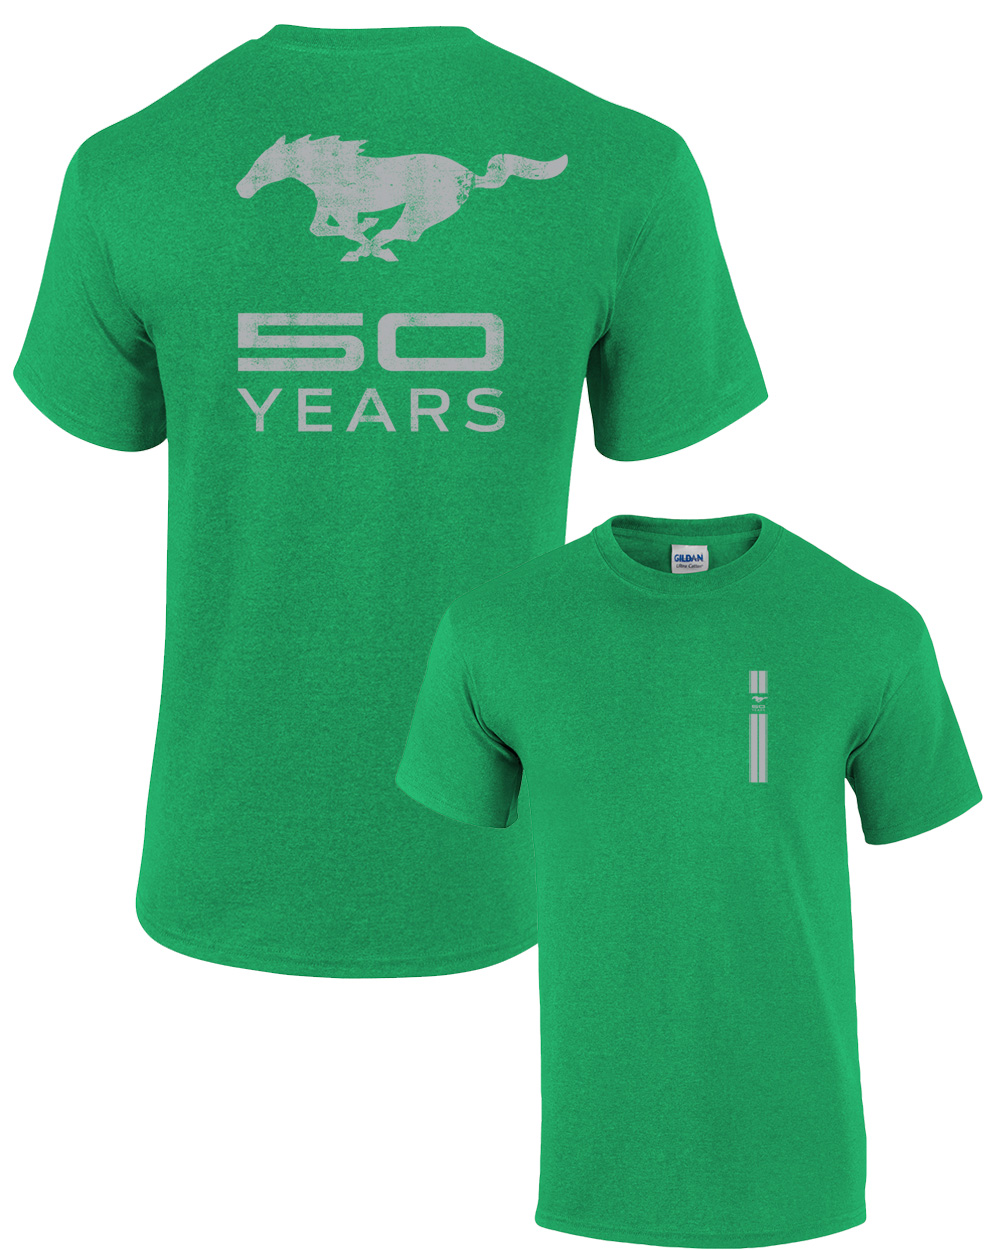 ford t shirt mustang 50 years pony ebay. Black Bedroom Furniture Sets. Home Design Ideas